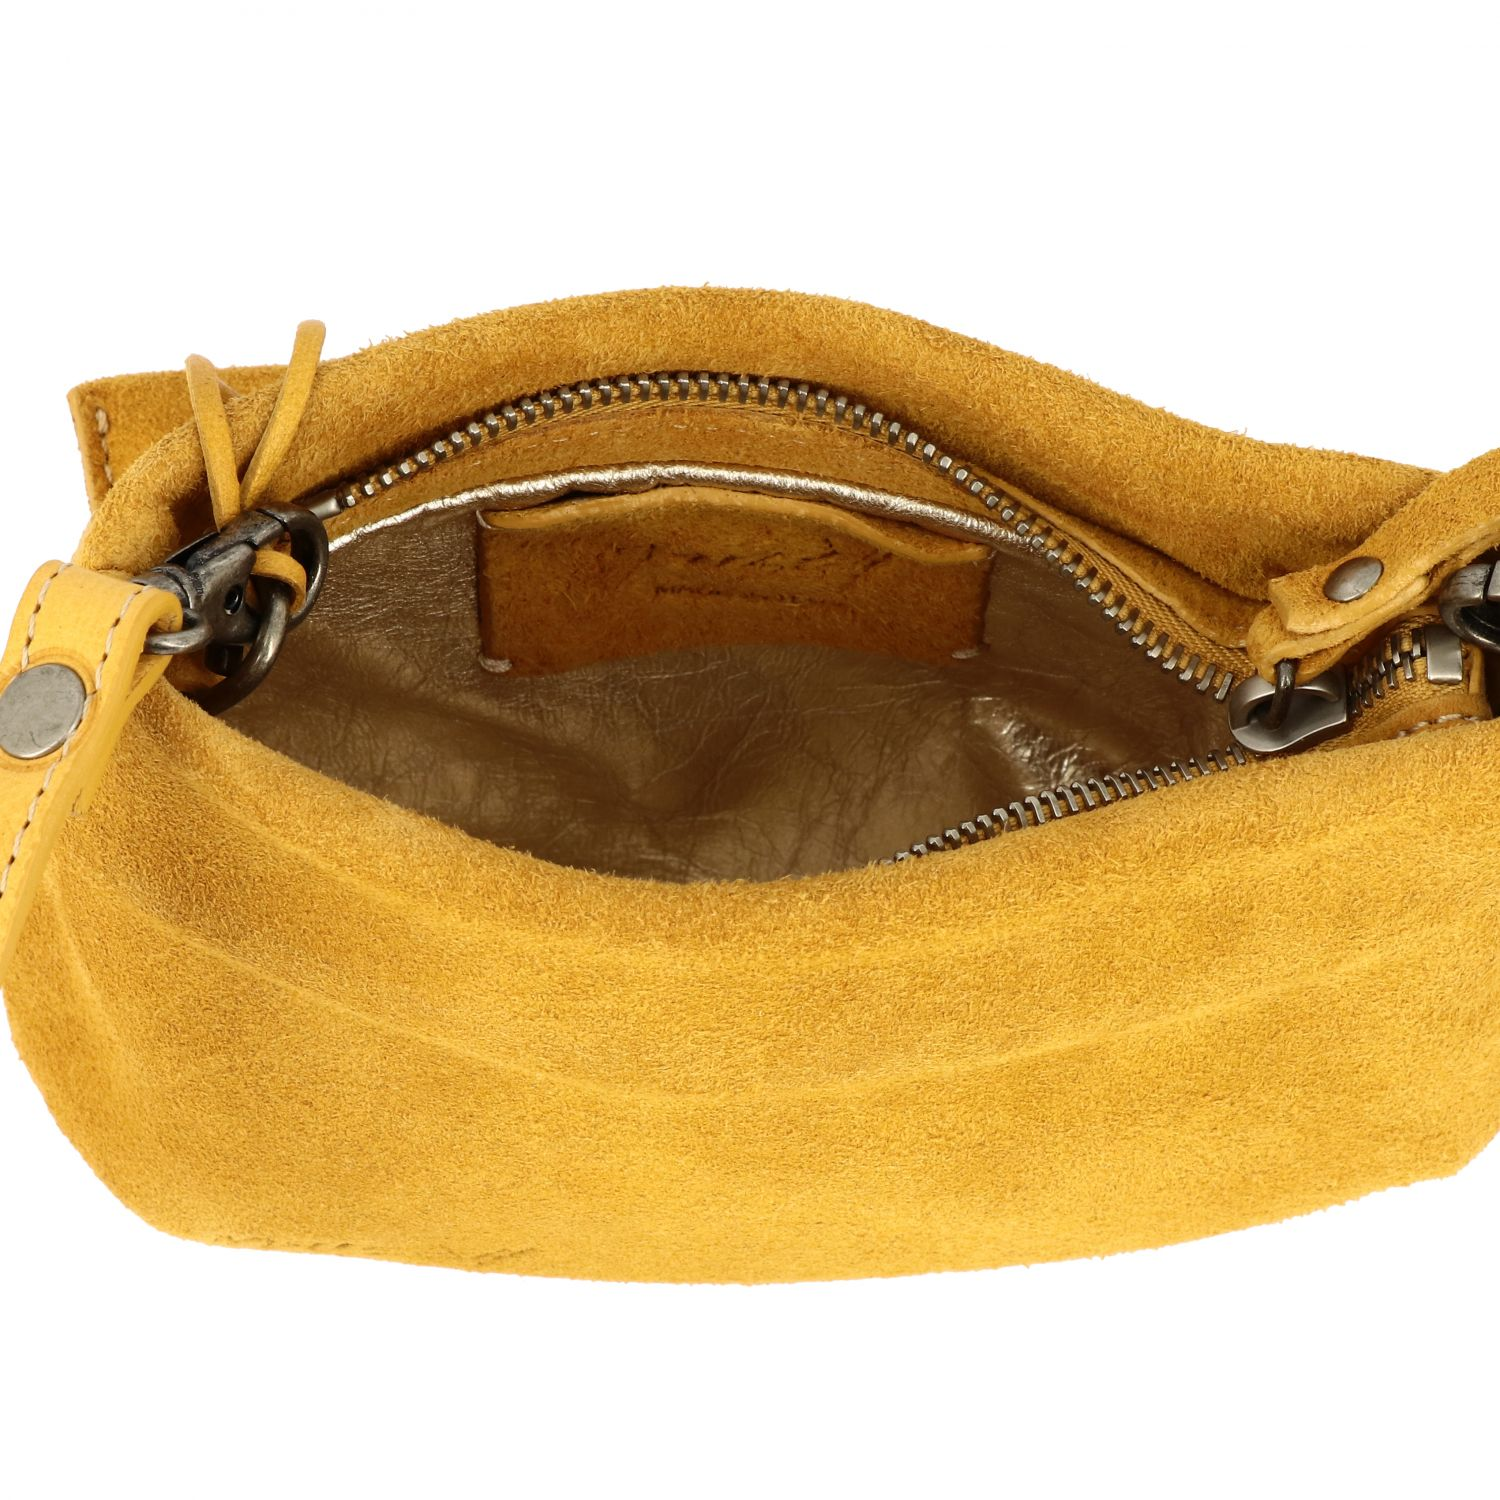 Marsell Fantasmetto shoulder bag in suede yellow 5